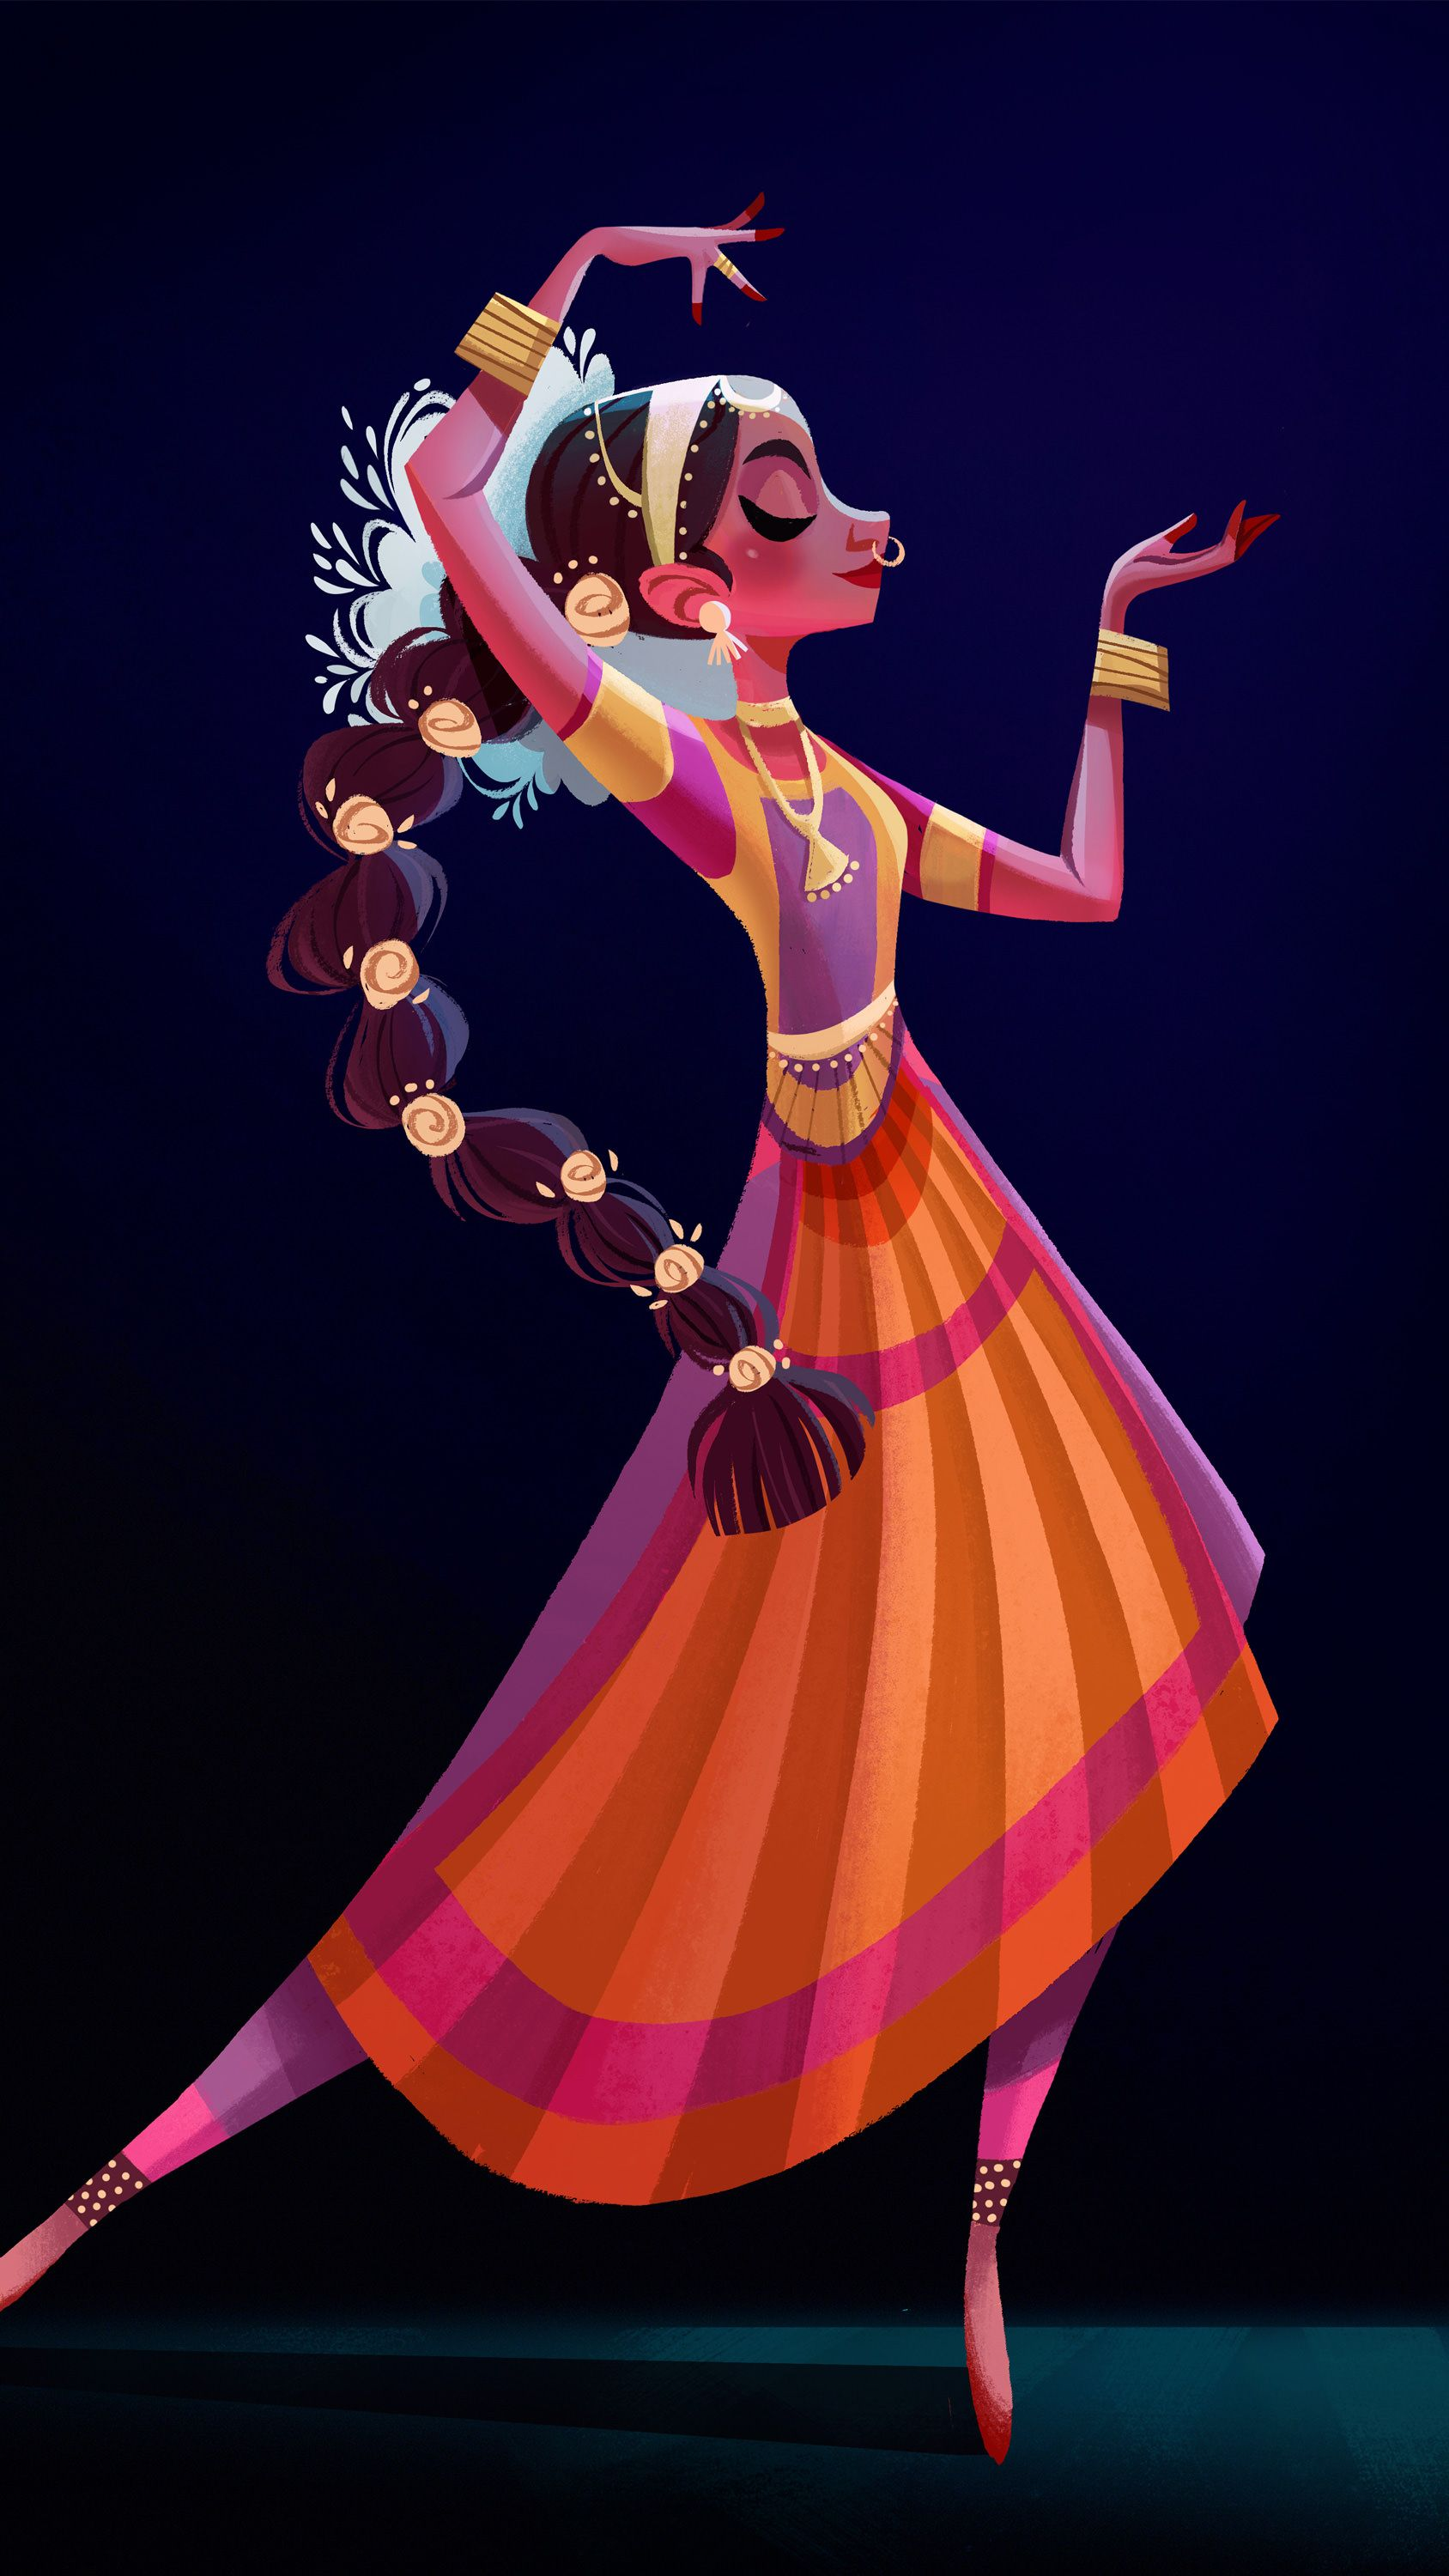 Classical Indian Dance Wallpapers Top Free Classical Indian Dance Backgrounds Wallpaperaccess